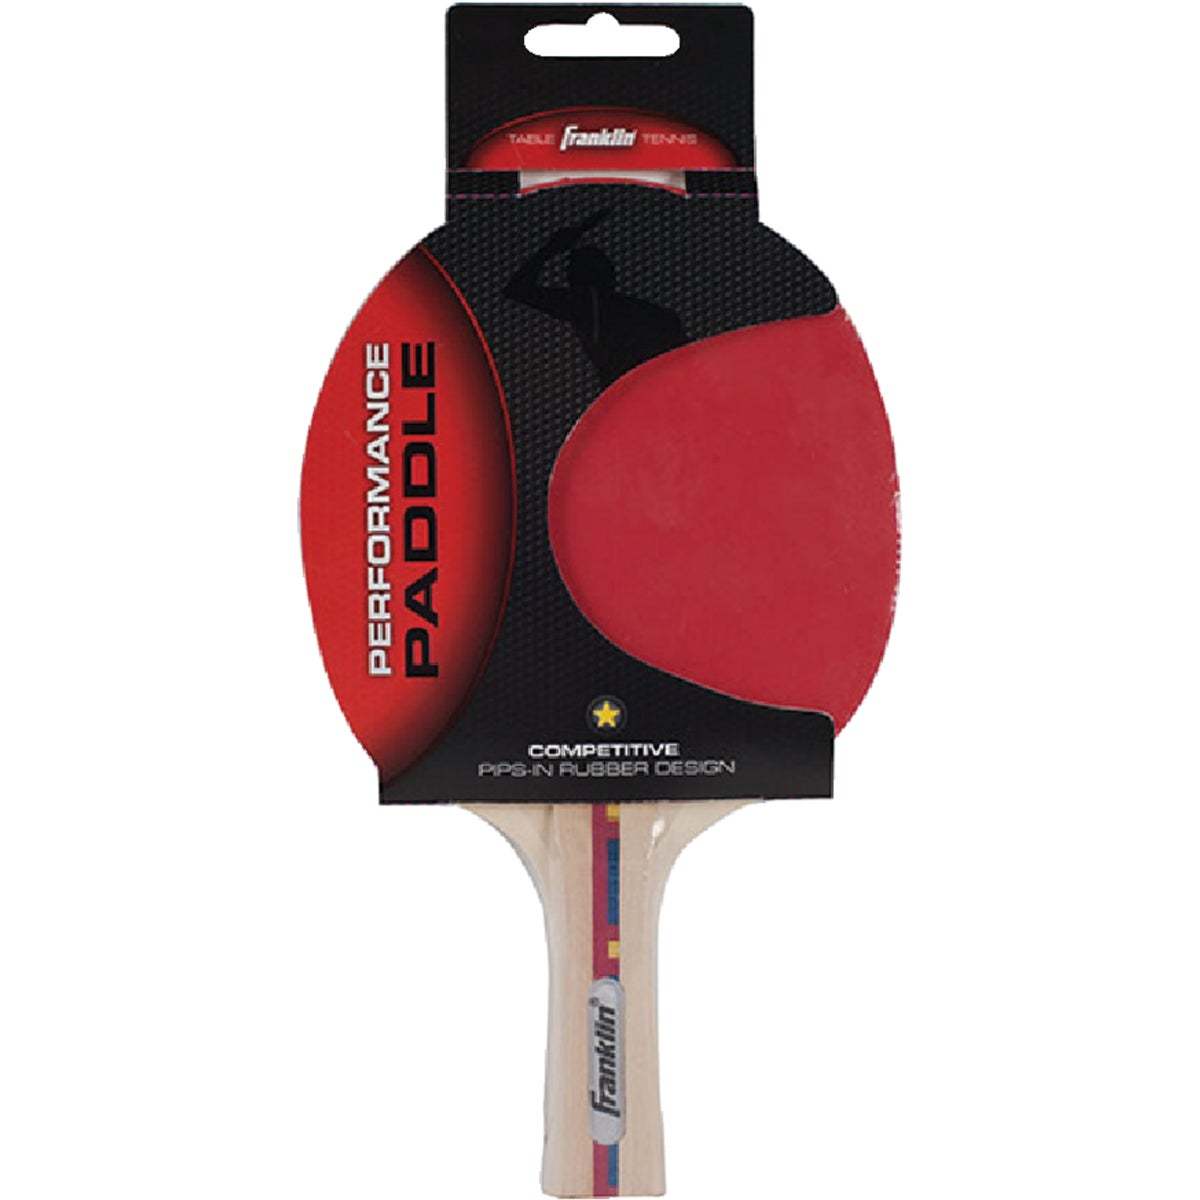 DELX TABLE TENNIS PADDLE